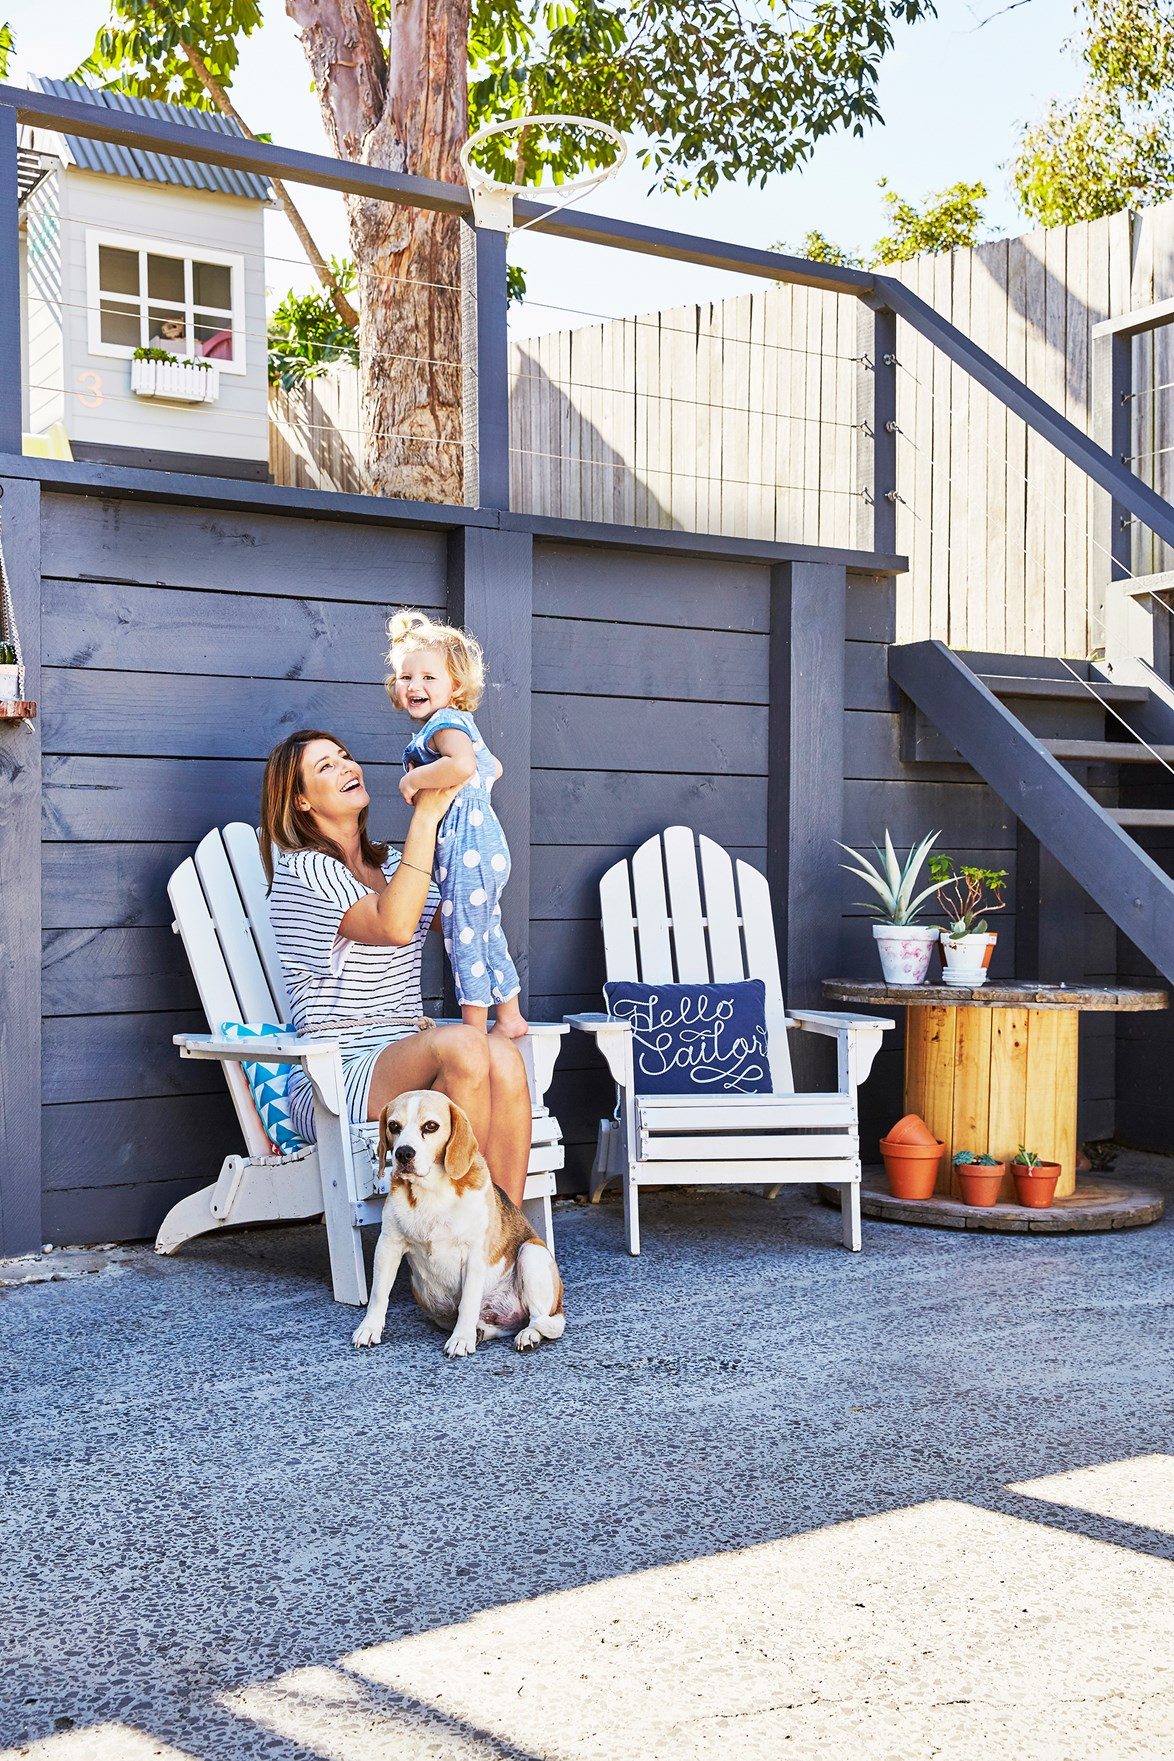 """Hamptons meets upcycling at this [coastal home near Lake Macquarie](https://www.homestolove.com.au/coastal-style-on-a-budget-4230